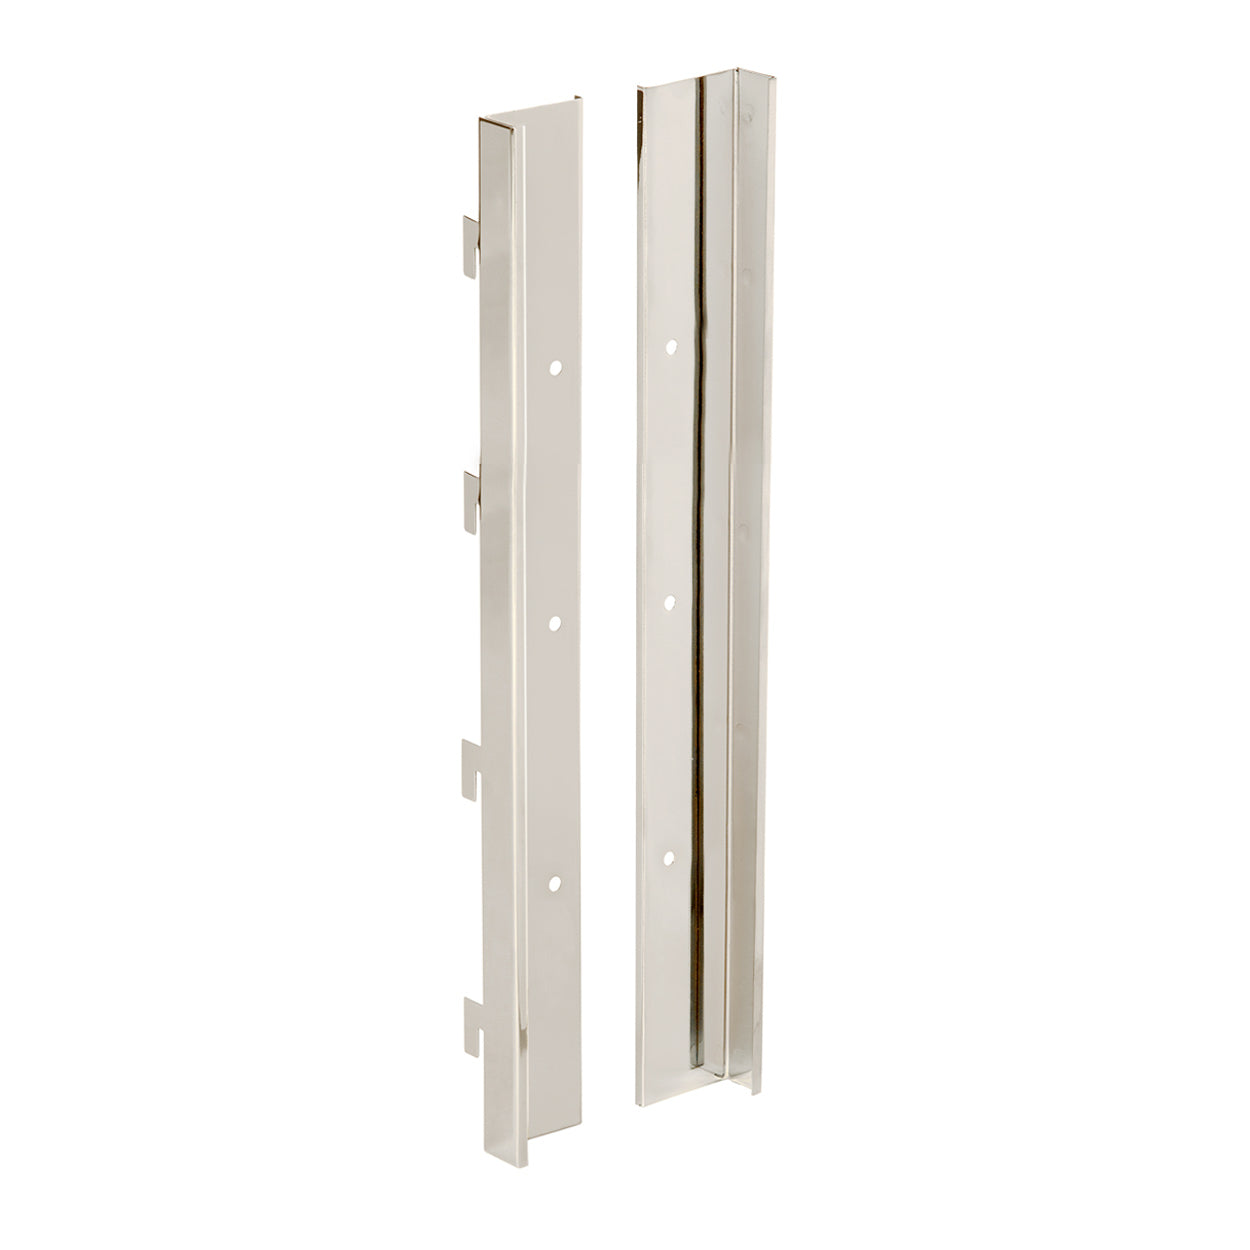 MAXe slatwall panel bracket set 560 mm H  560 H x 18 mm Thick E8005BK